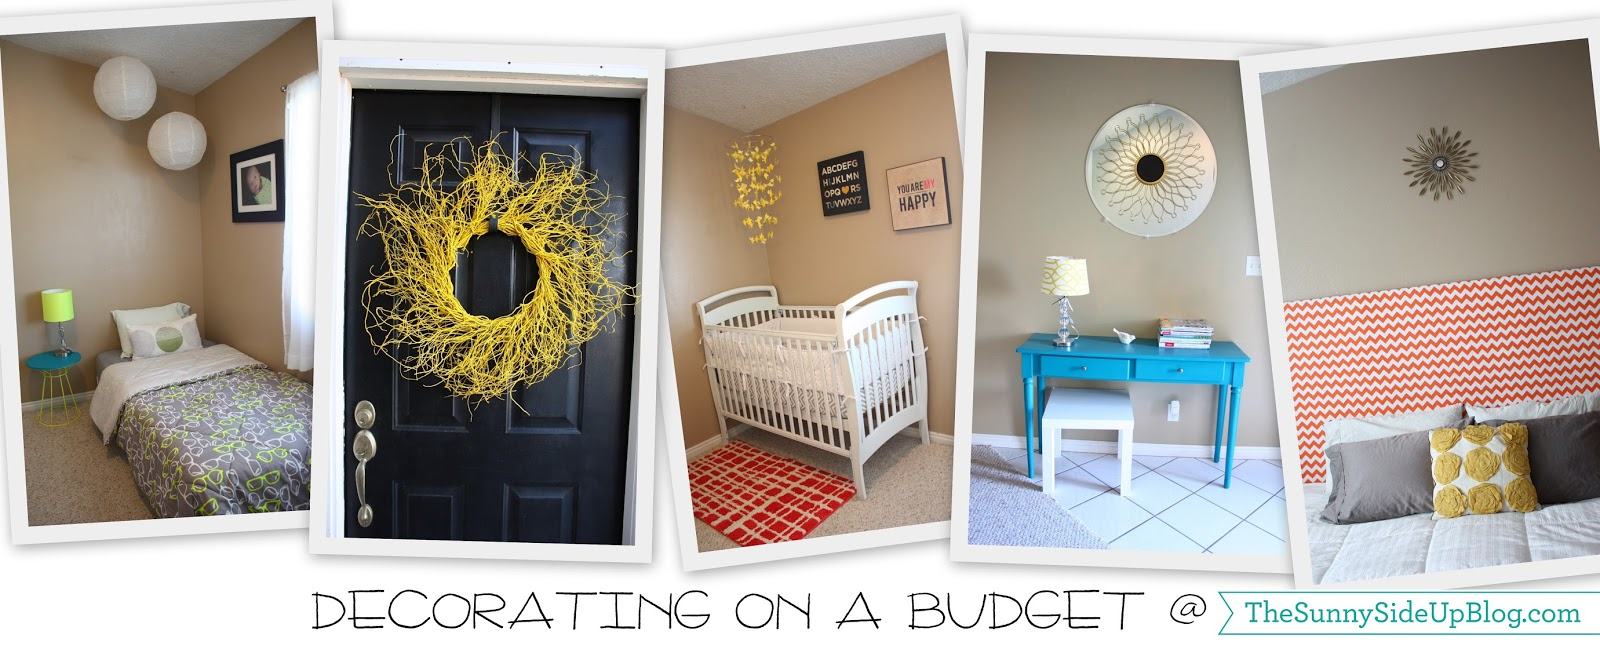 decorating on a budget fun ideas the sunny side up blog